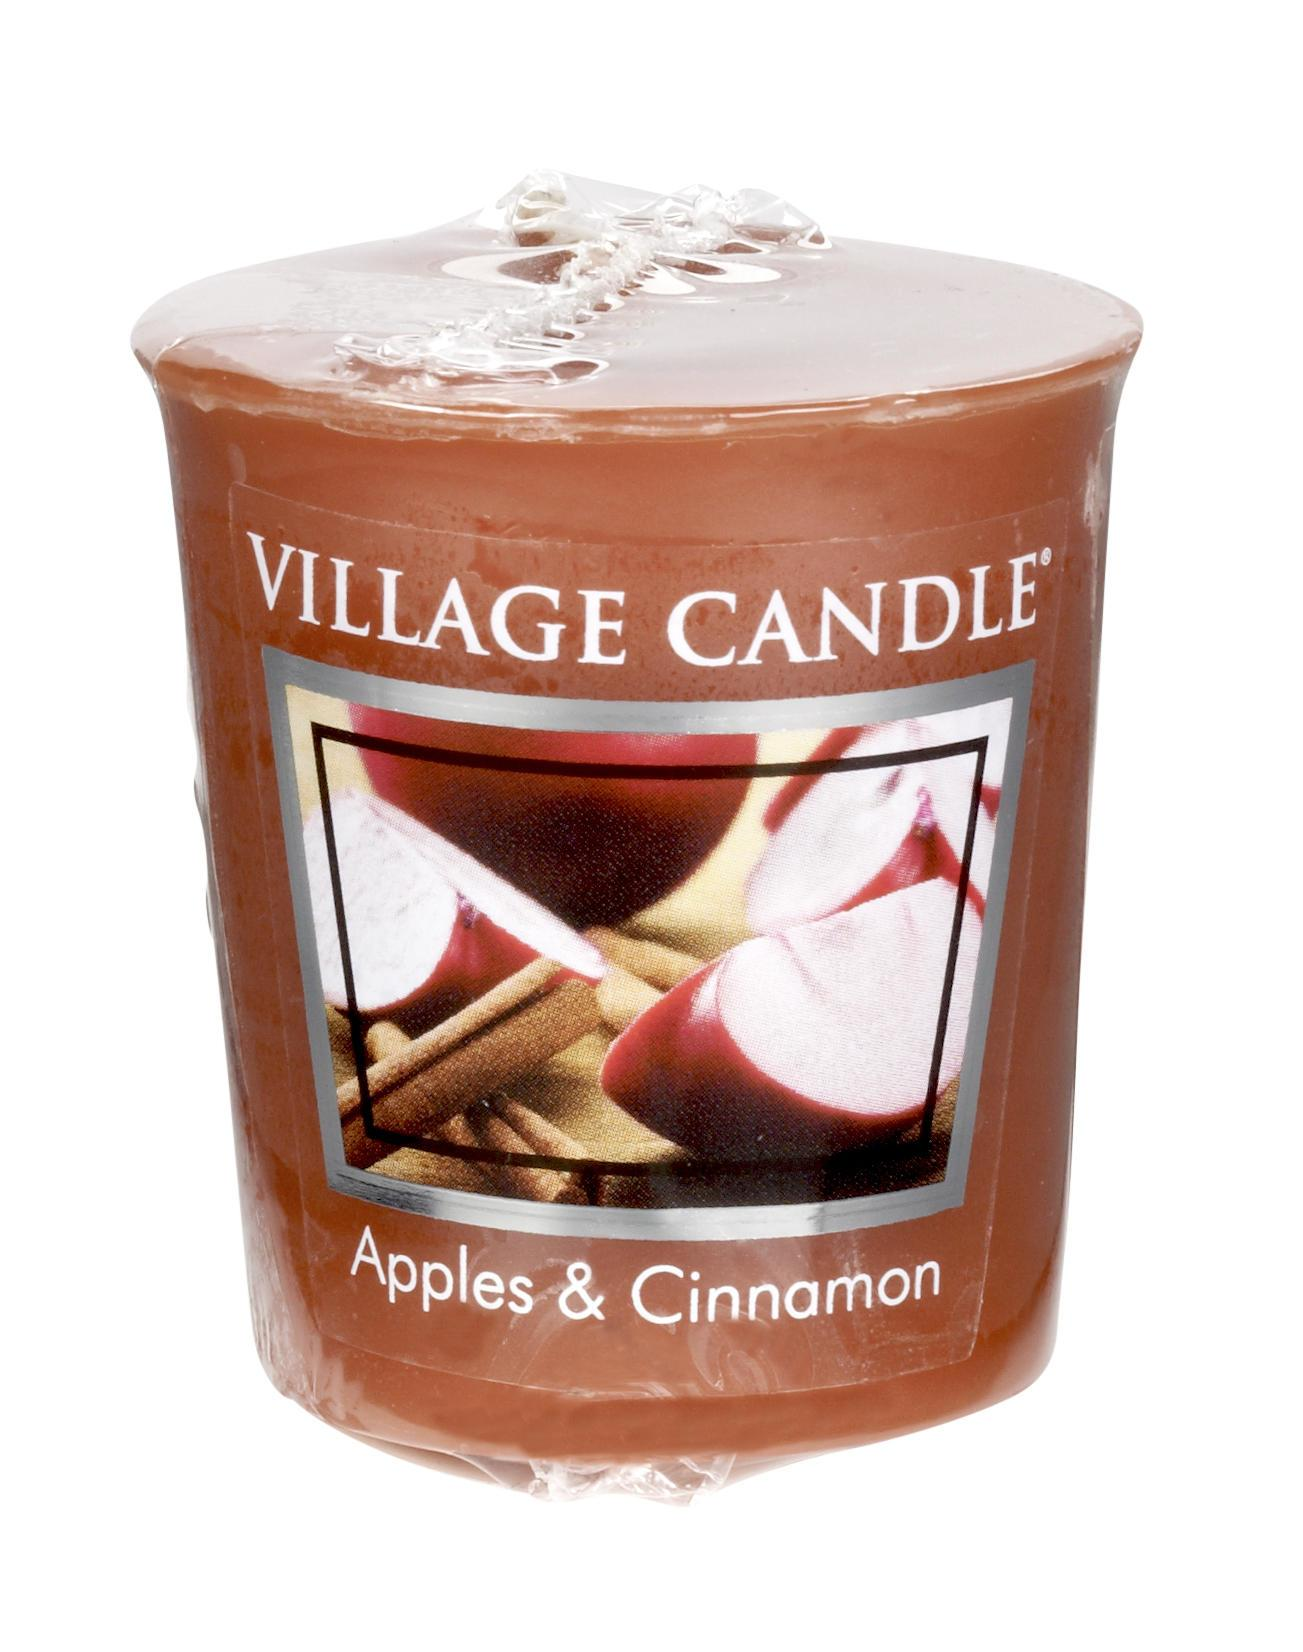 Village Candle Votivní svíčka Village Candle - Apple Cinnamon